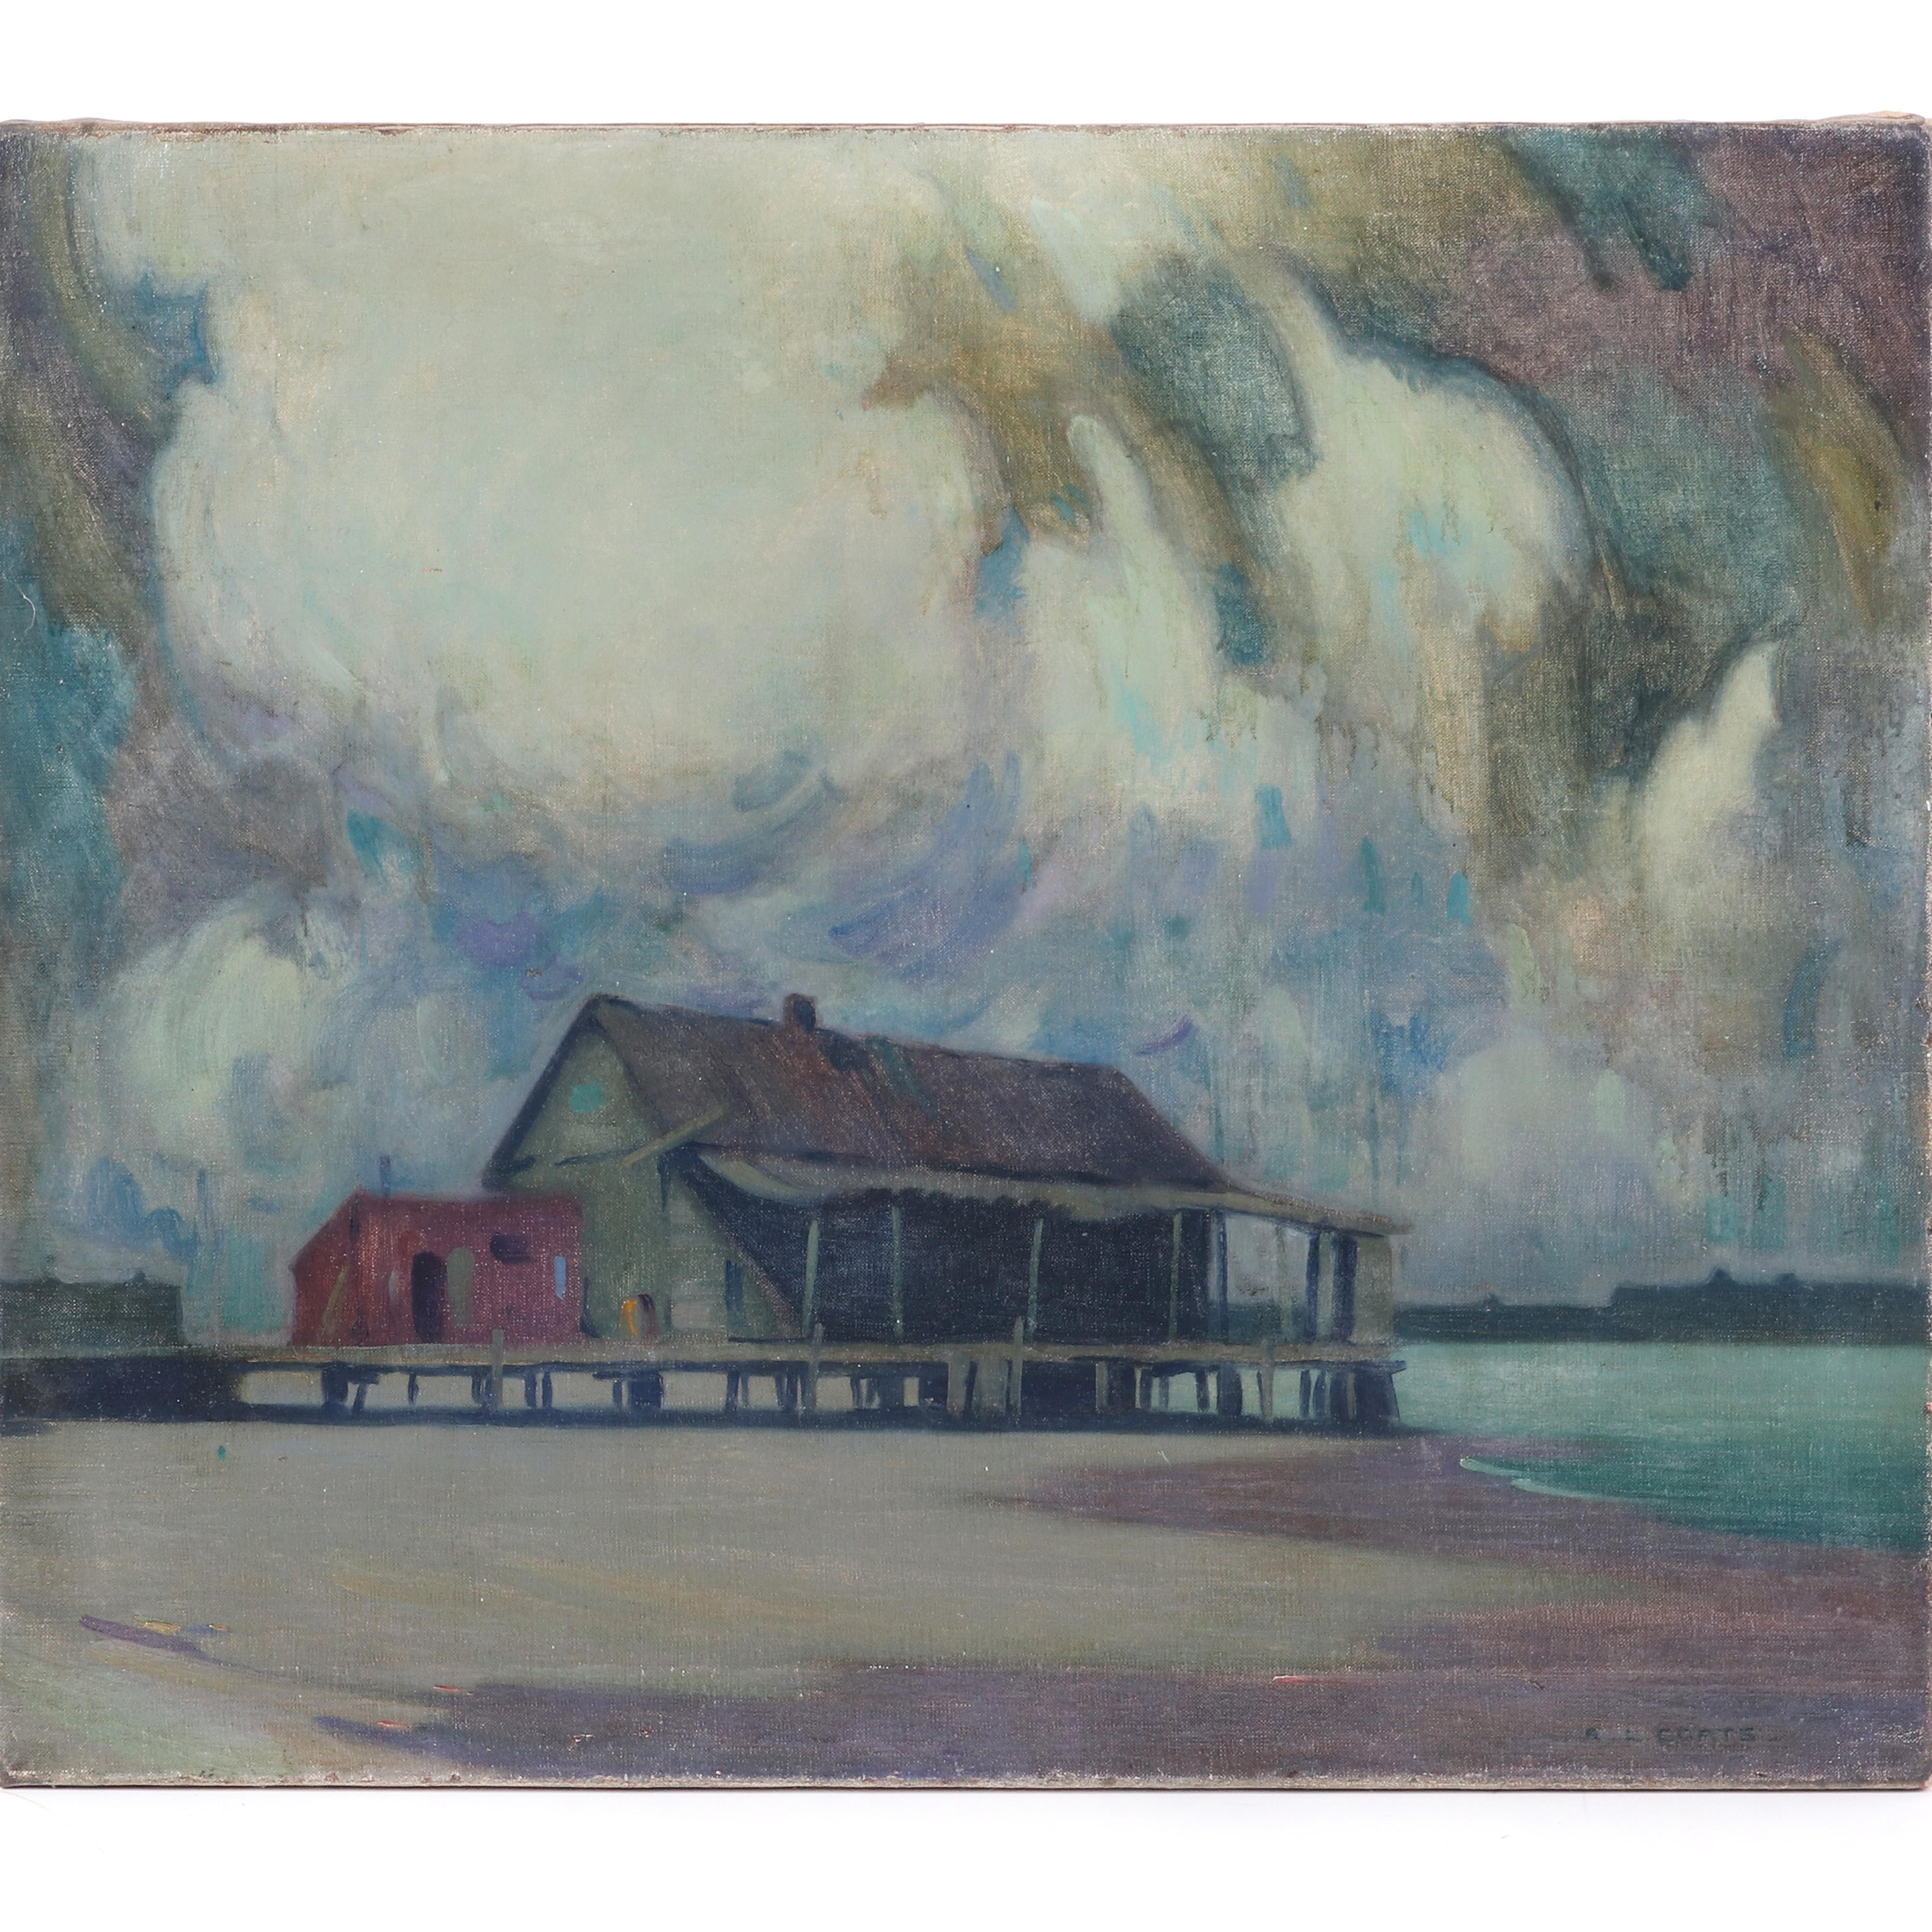 """Randolph LaSalle Coats, (American, 1891-1957), Untitled (Building on a Pier), ca.1920s, oil on canvas, 25""""H x 30""""W"""